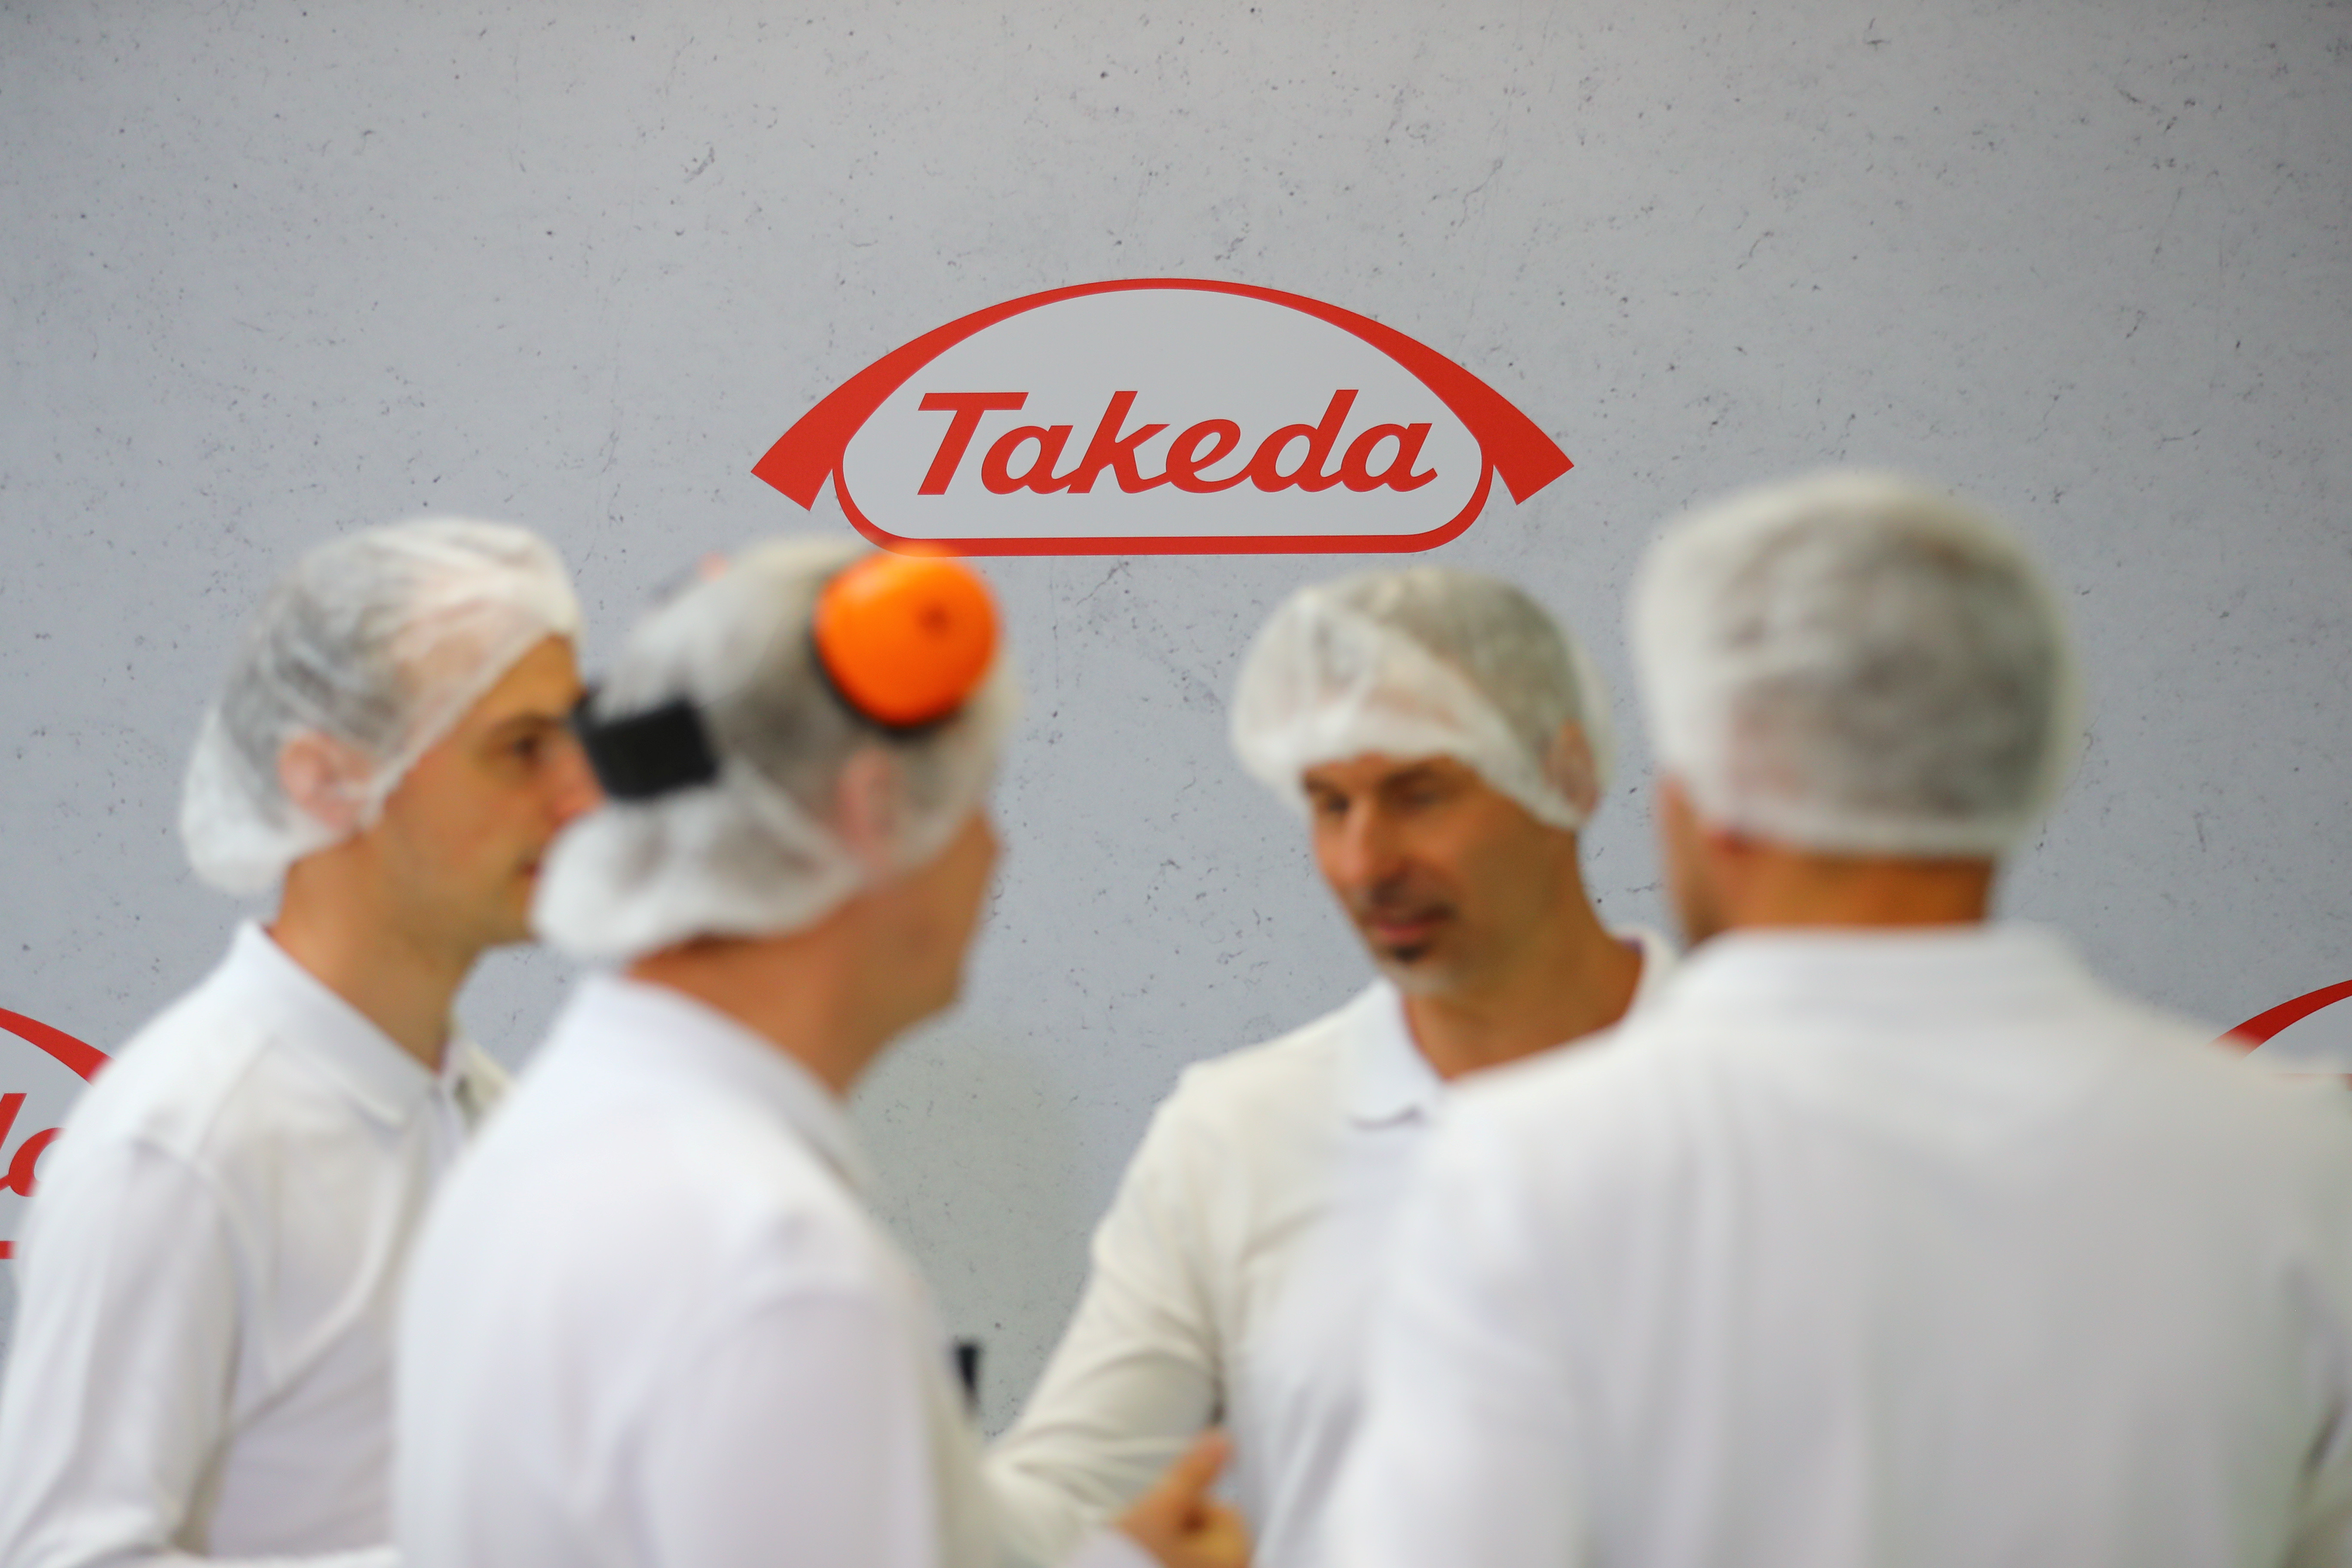 Workers at a Takeda pharma factory